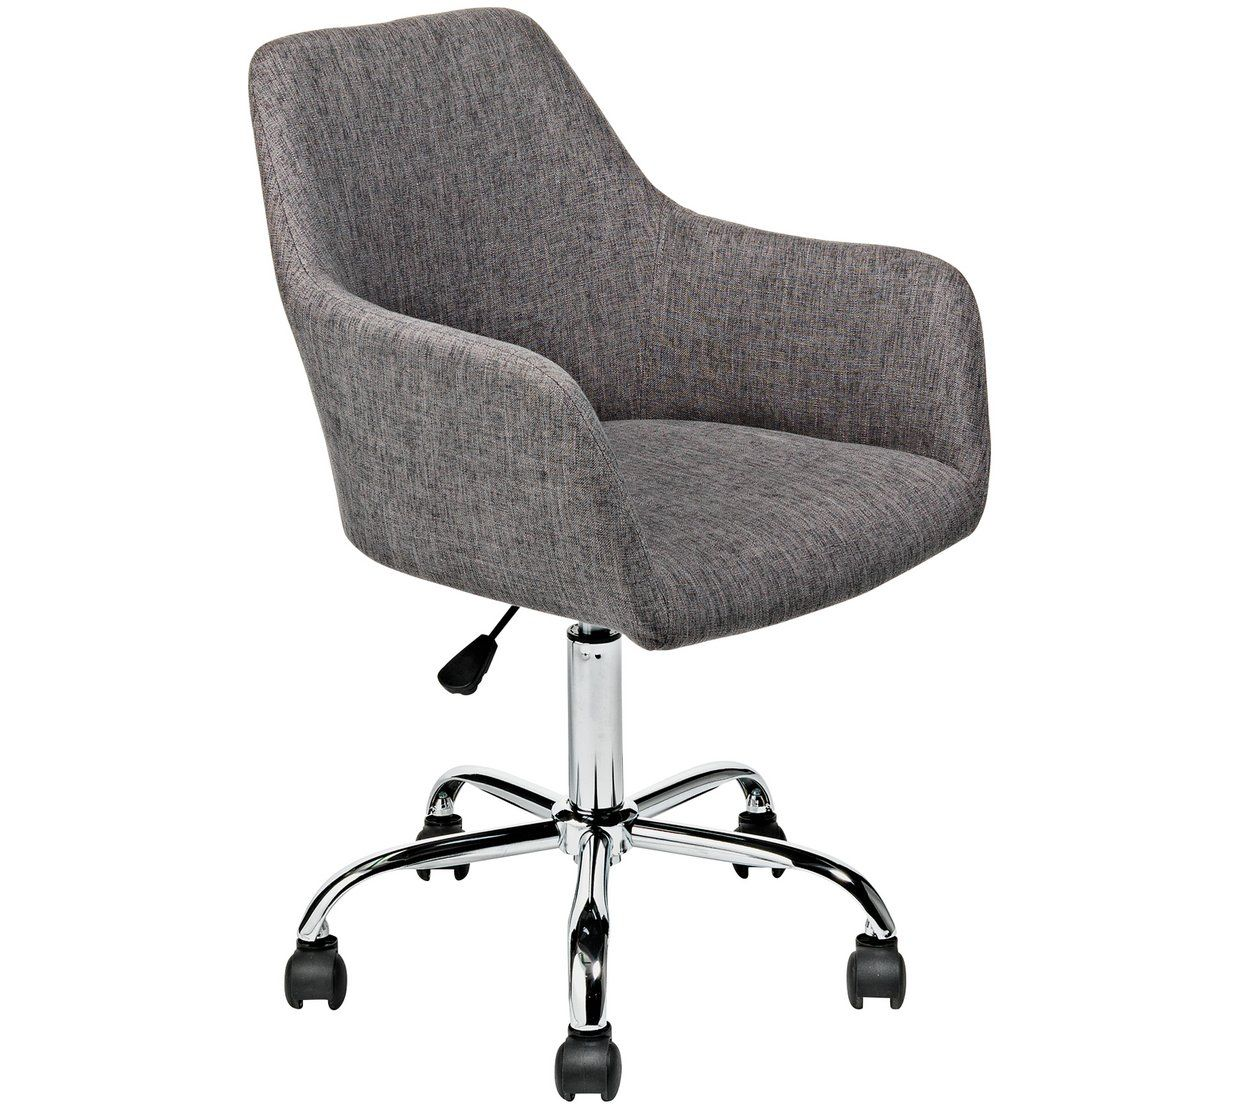 Buy Home Fabric Office Chair Charcoal Limited Stock Home And Garden Argos Office Chair Chair Argos Home